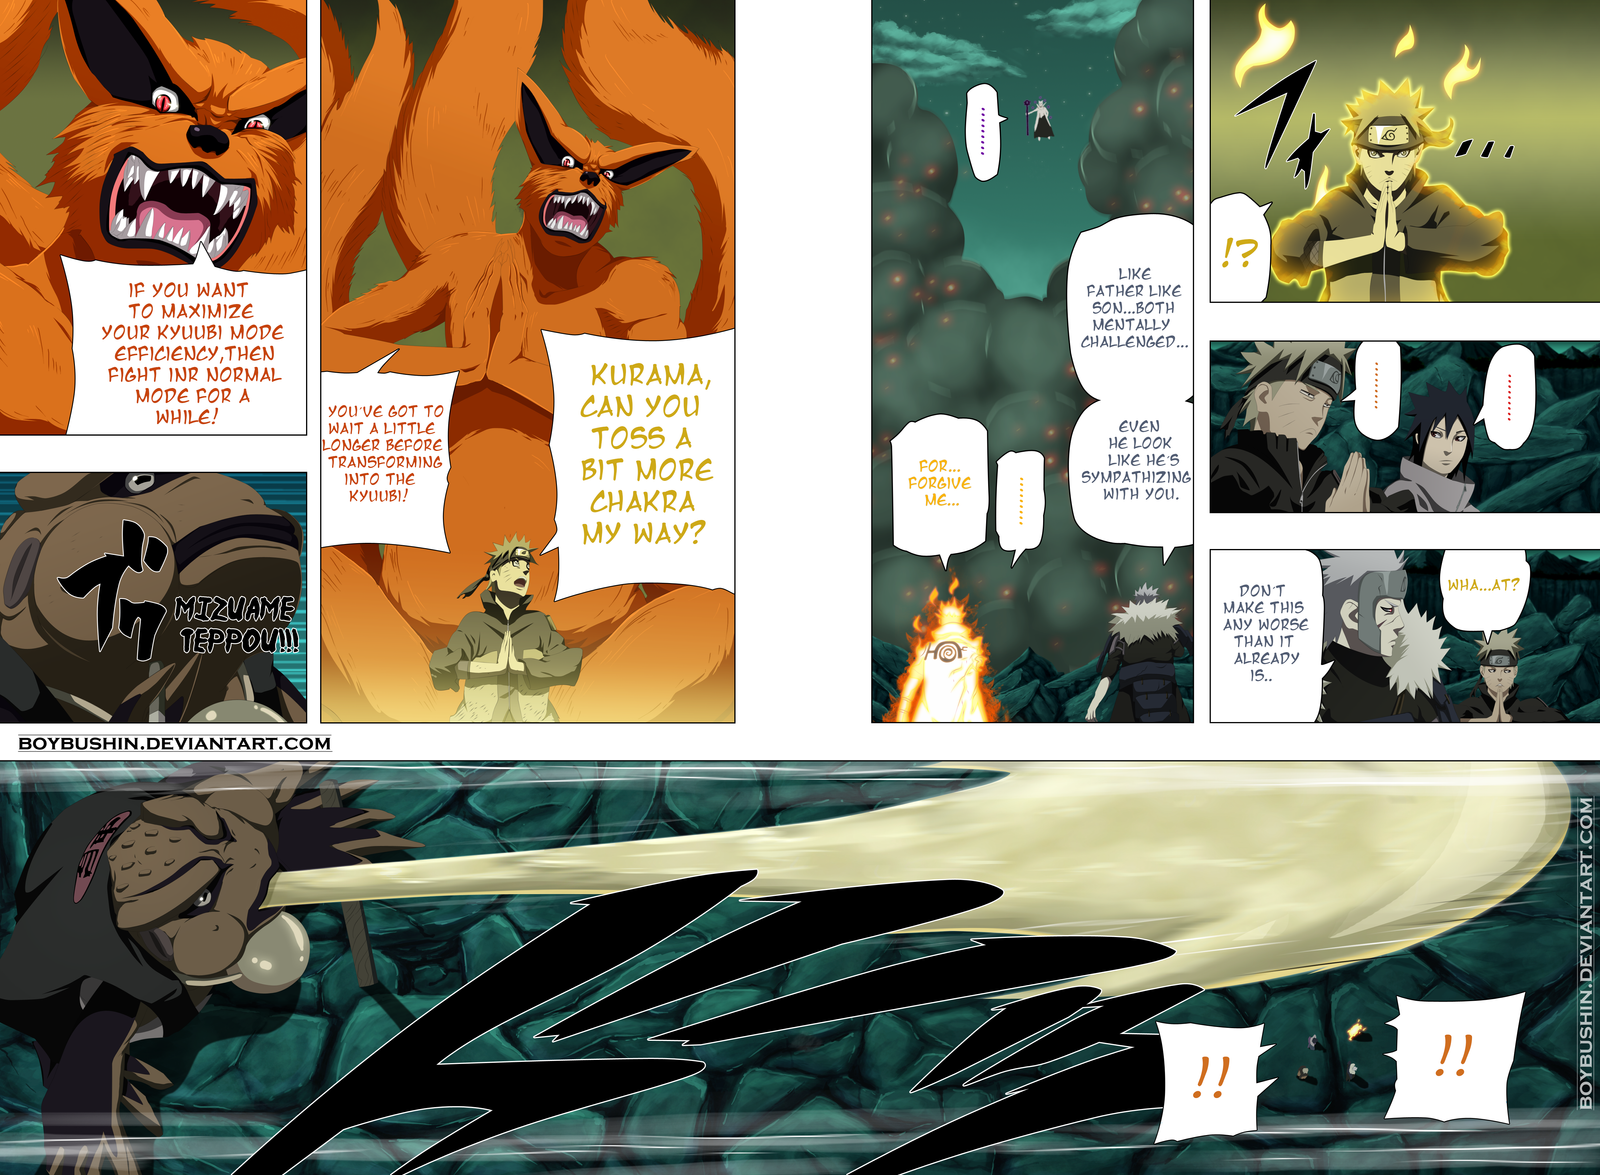 Naruto 642 Page 06-07 Project MangArtistColor by BoyBushin